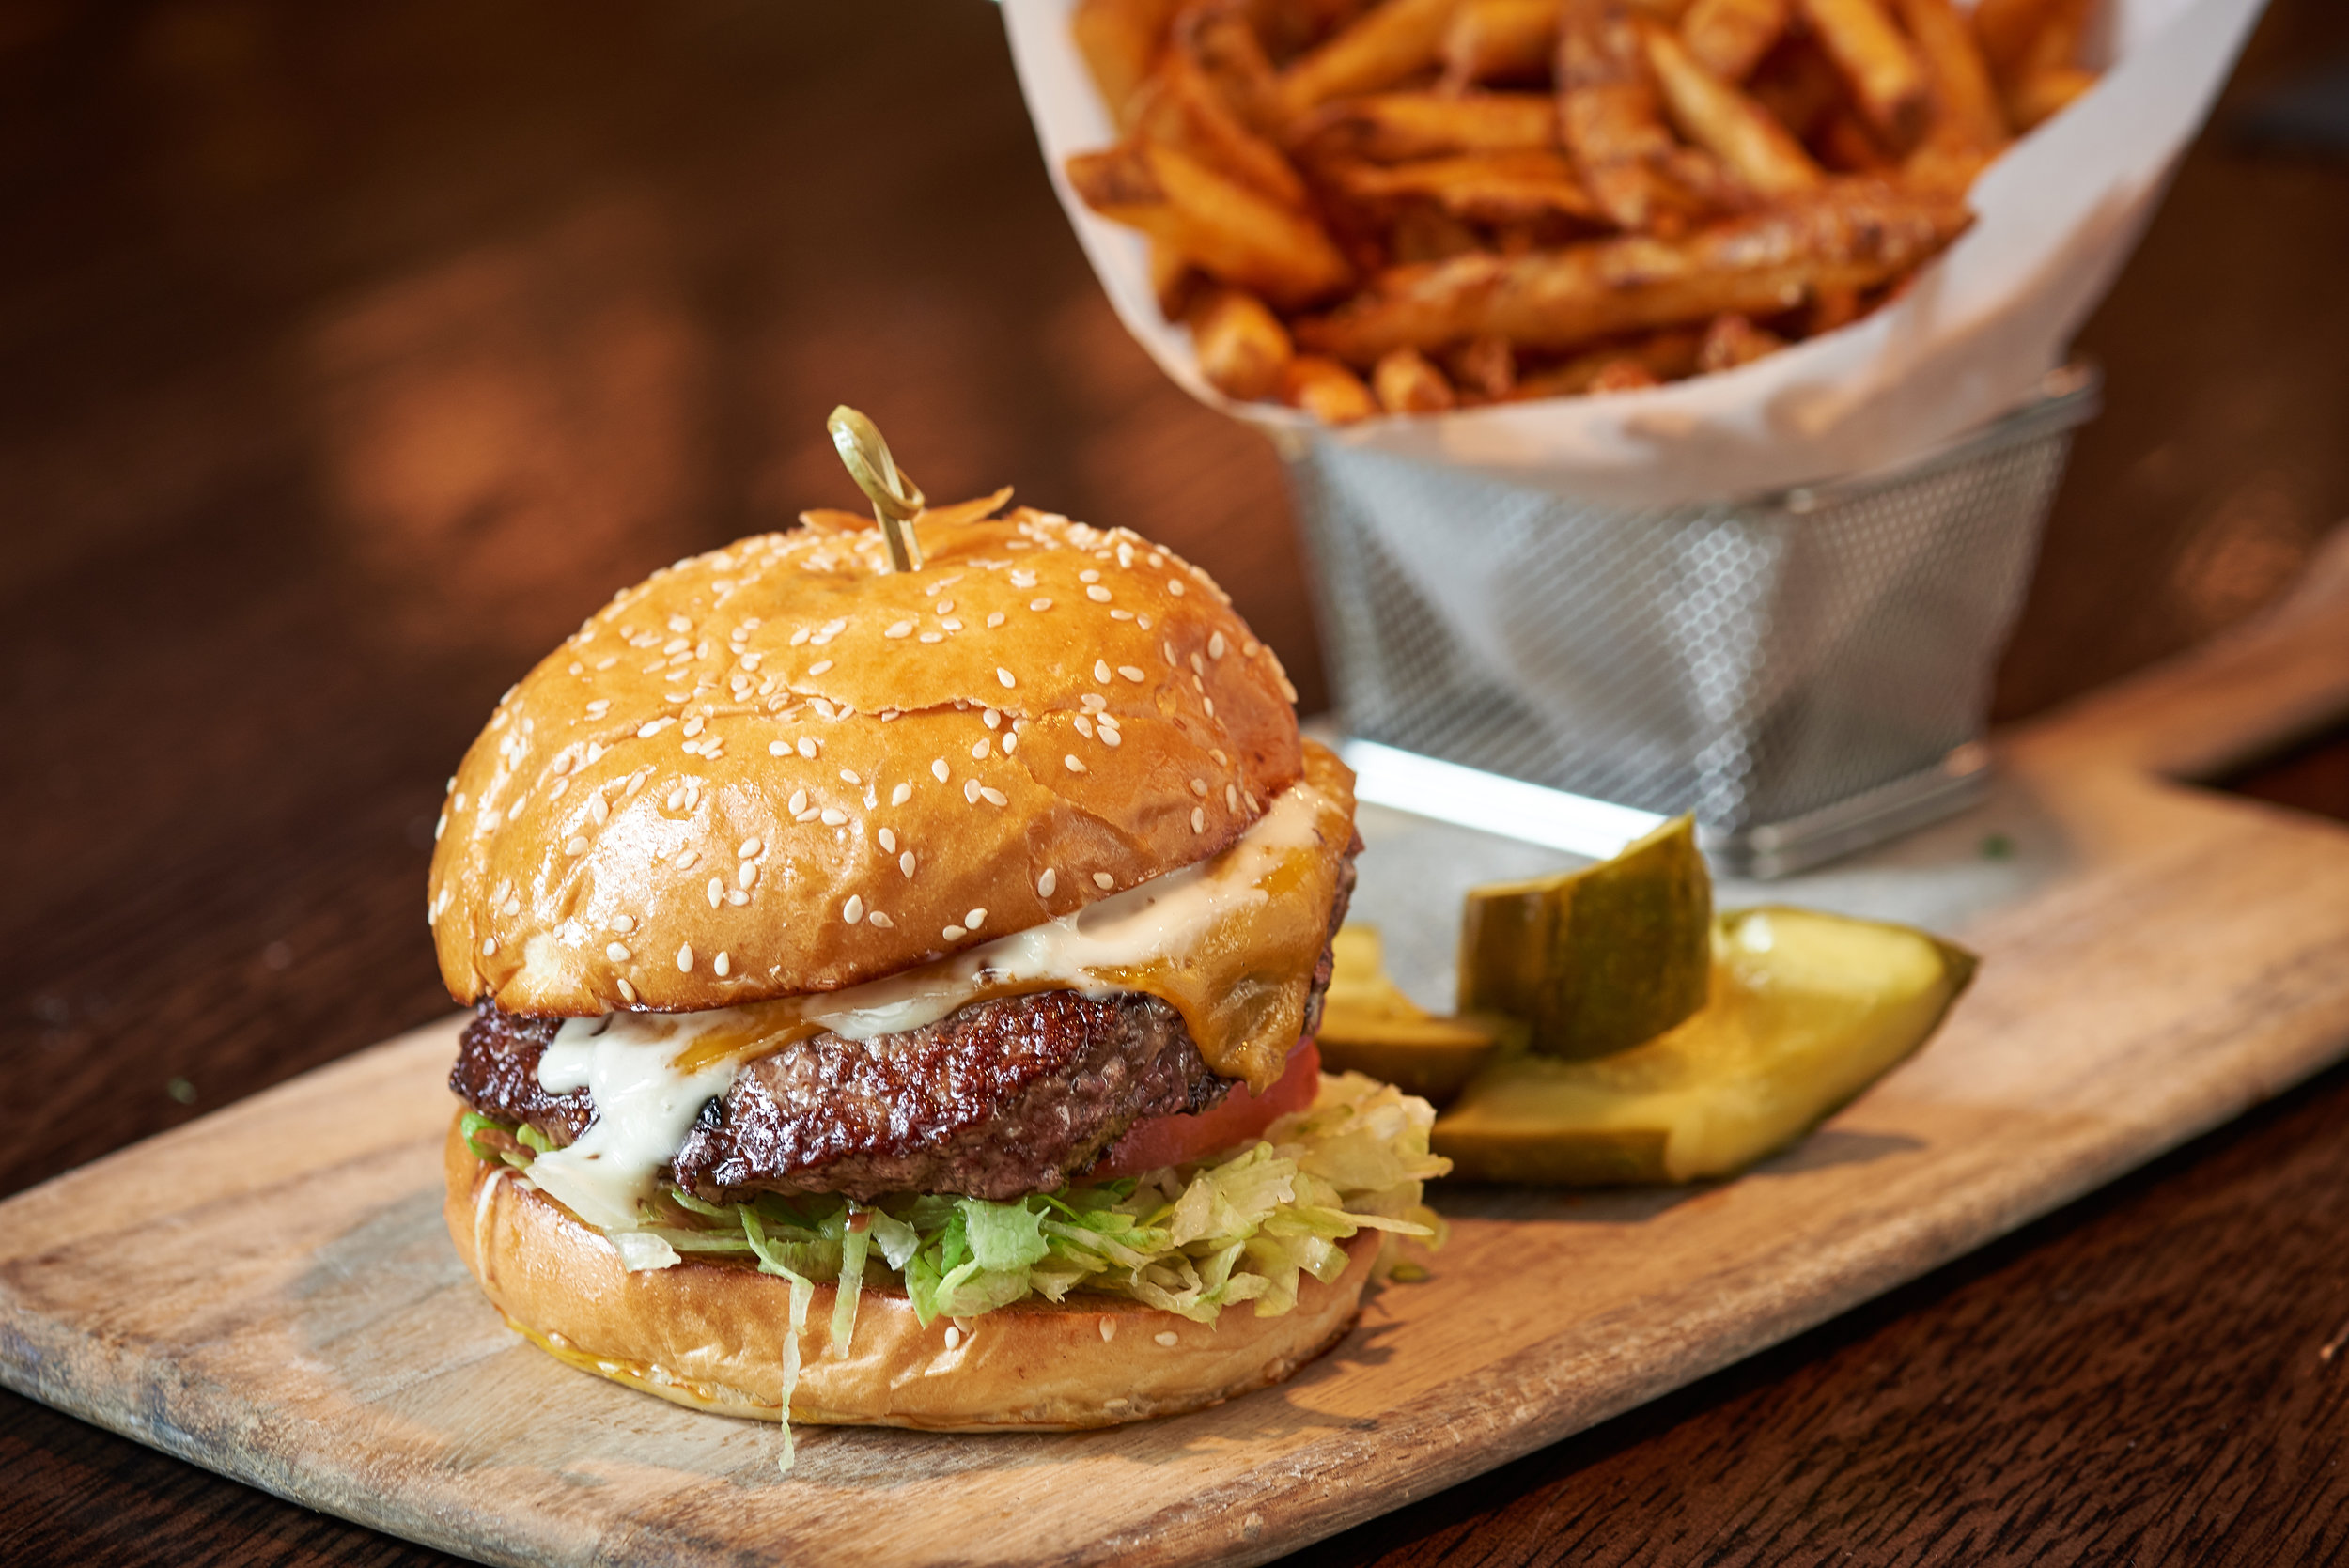 Professional food photo of a juicy cheese burger with french fries and pickles on the side. Commercial photography